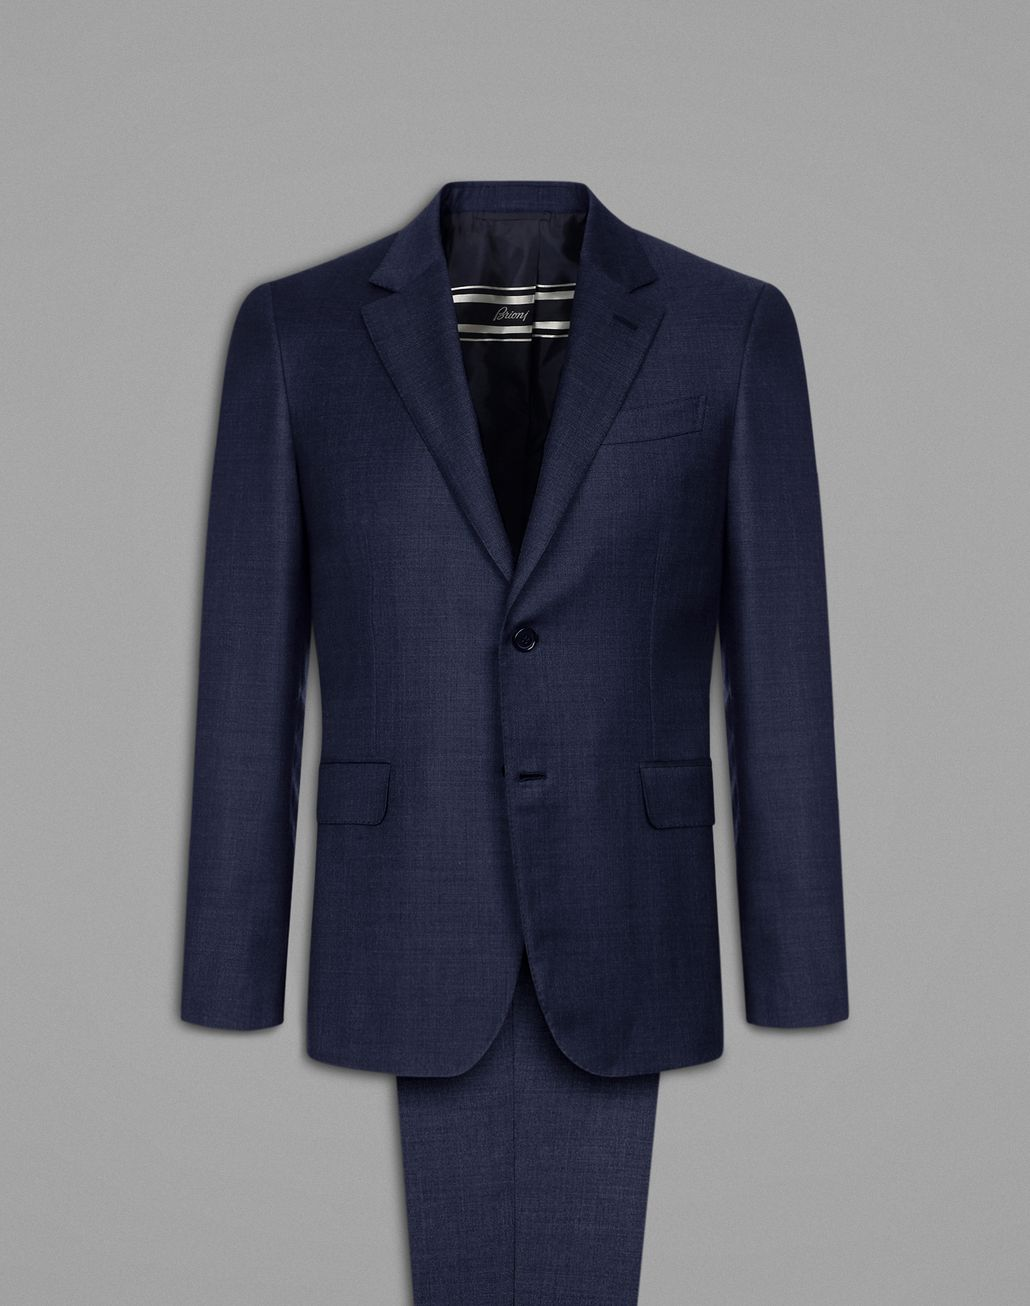 BRIONI Navy Blue Primo Suit Suits & Jackets Man f